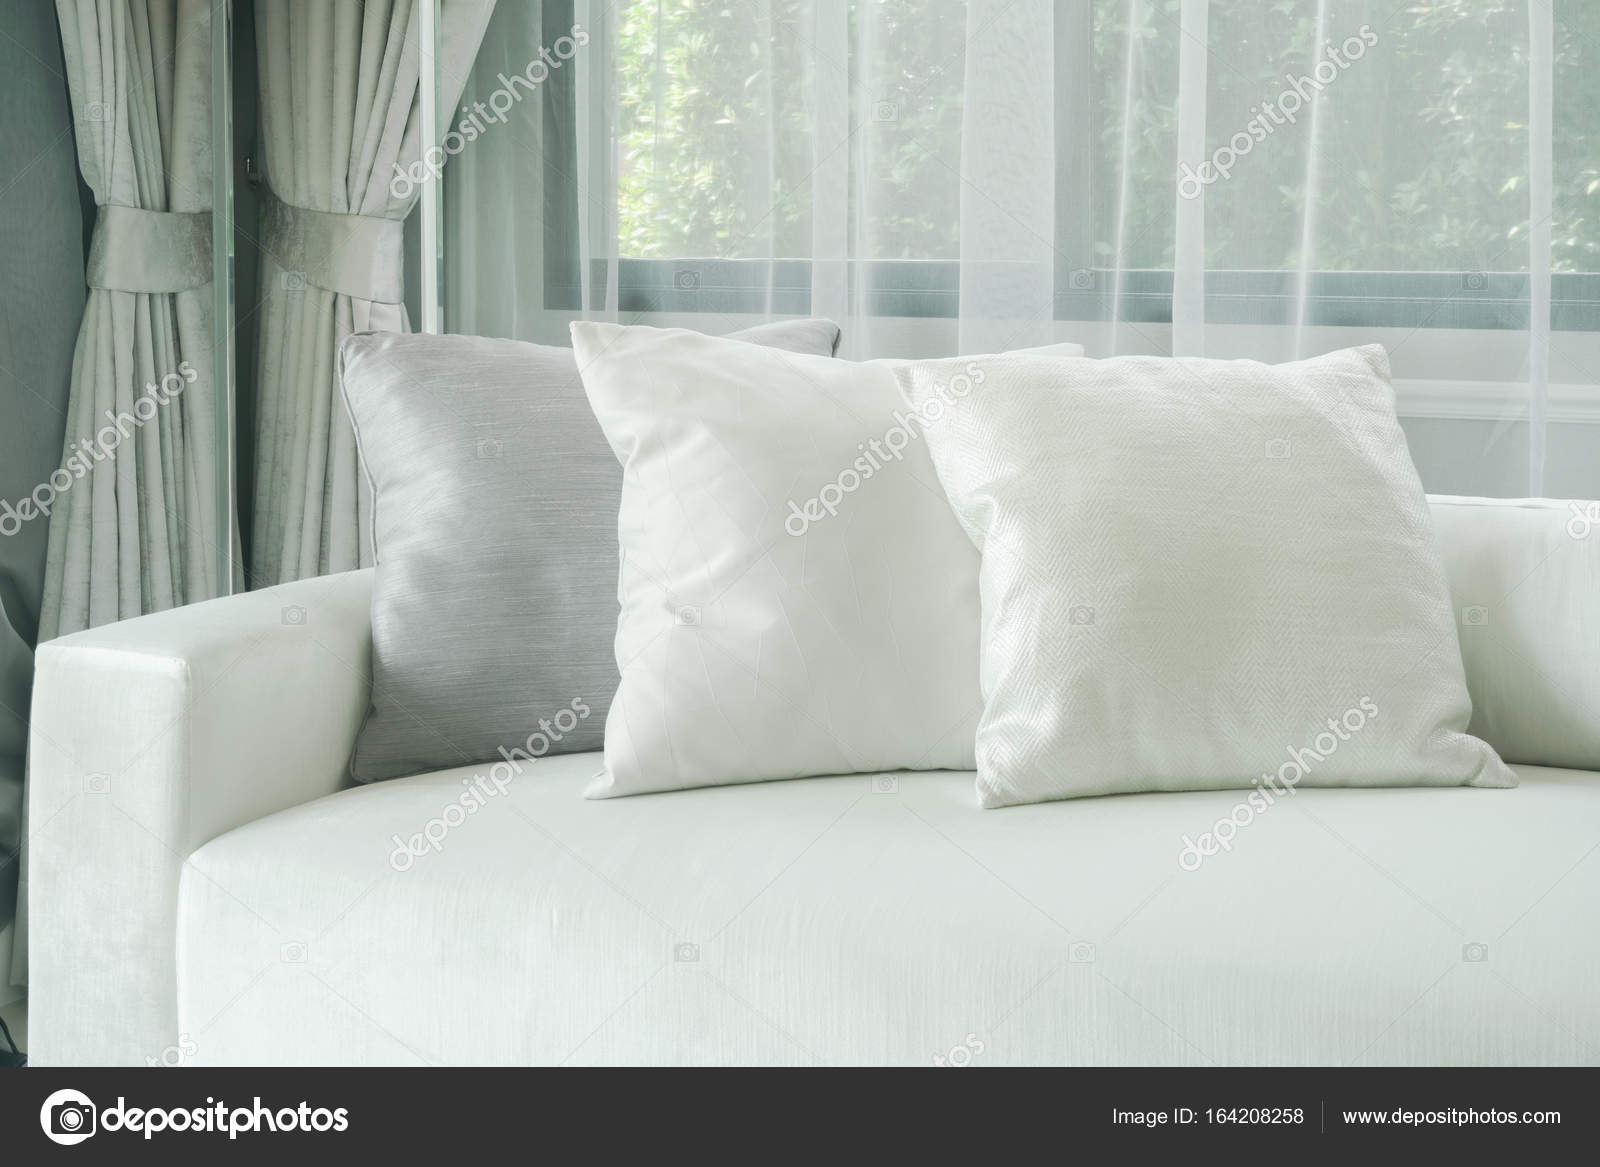 Awesome Pillows Lay On White Sofa With Sheer Curtain In Background Squirreltailoven Fun Painted Chair Ideas Images Squirreltailovenorg